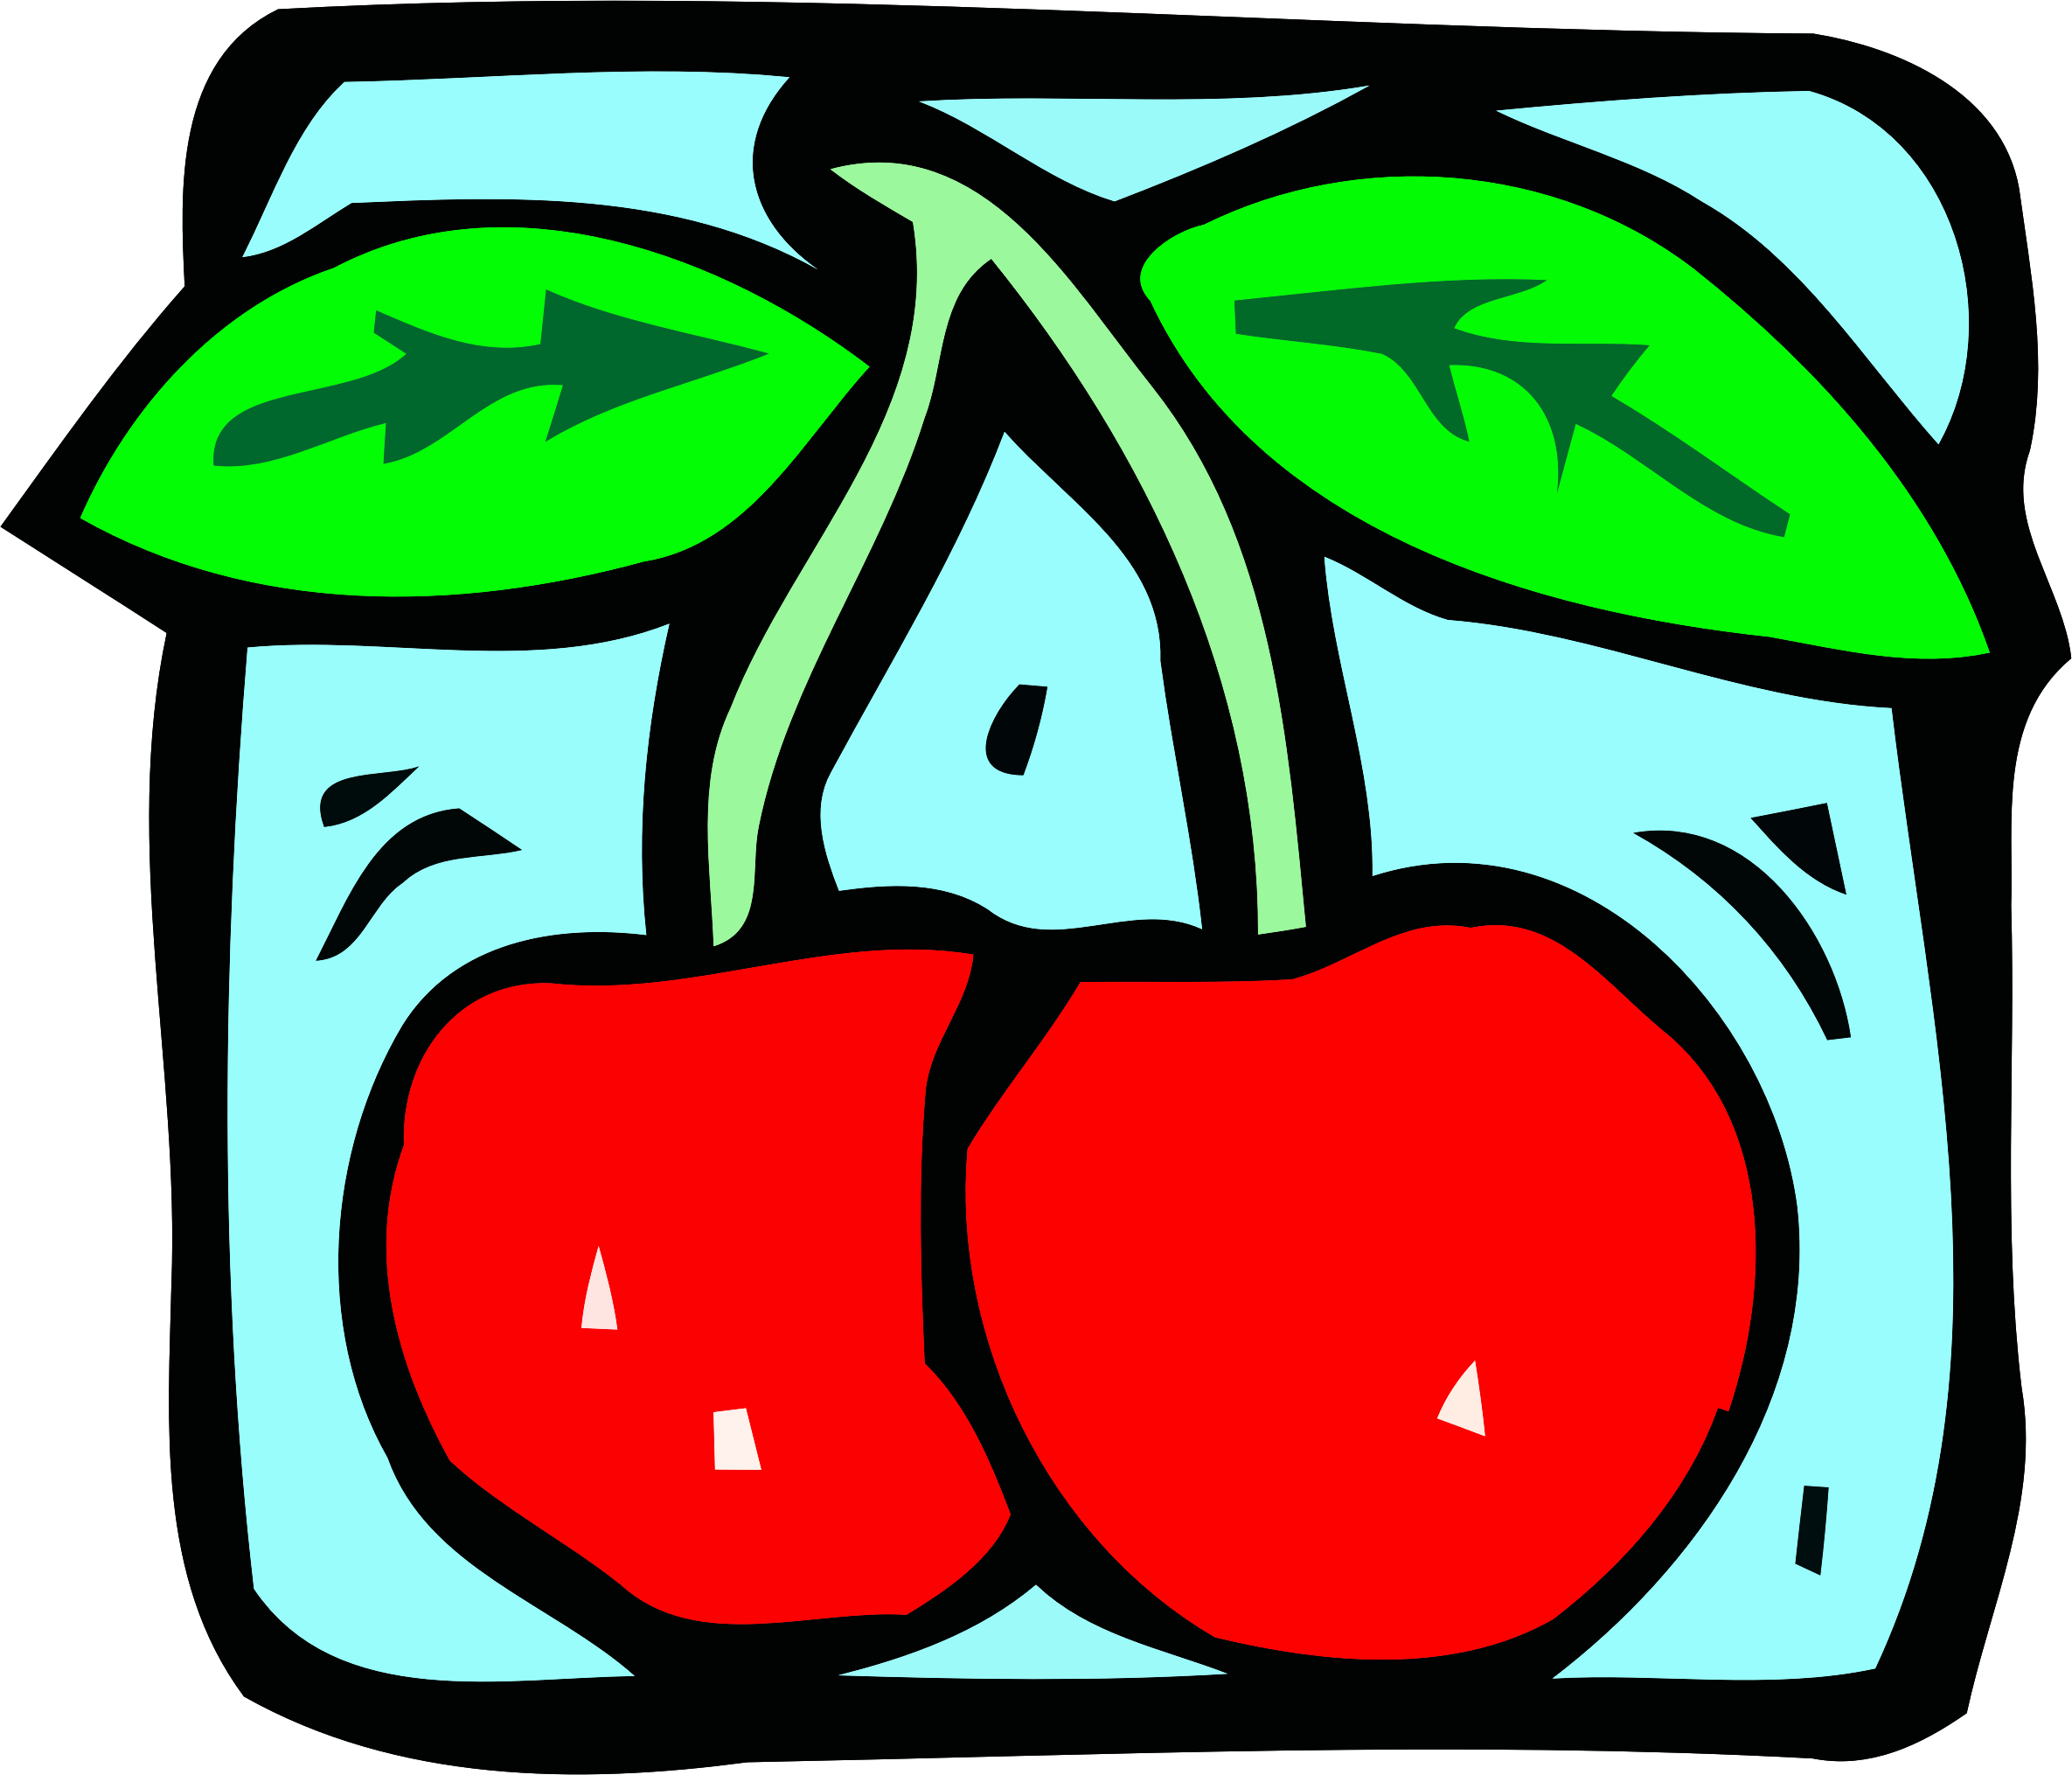 Food and drink icon - cherries by Firkin